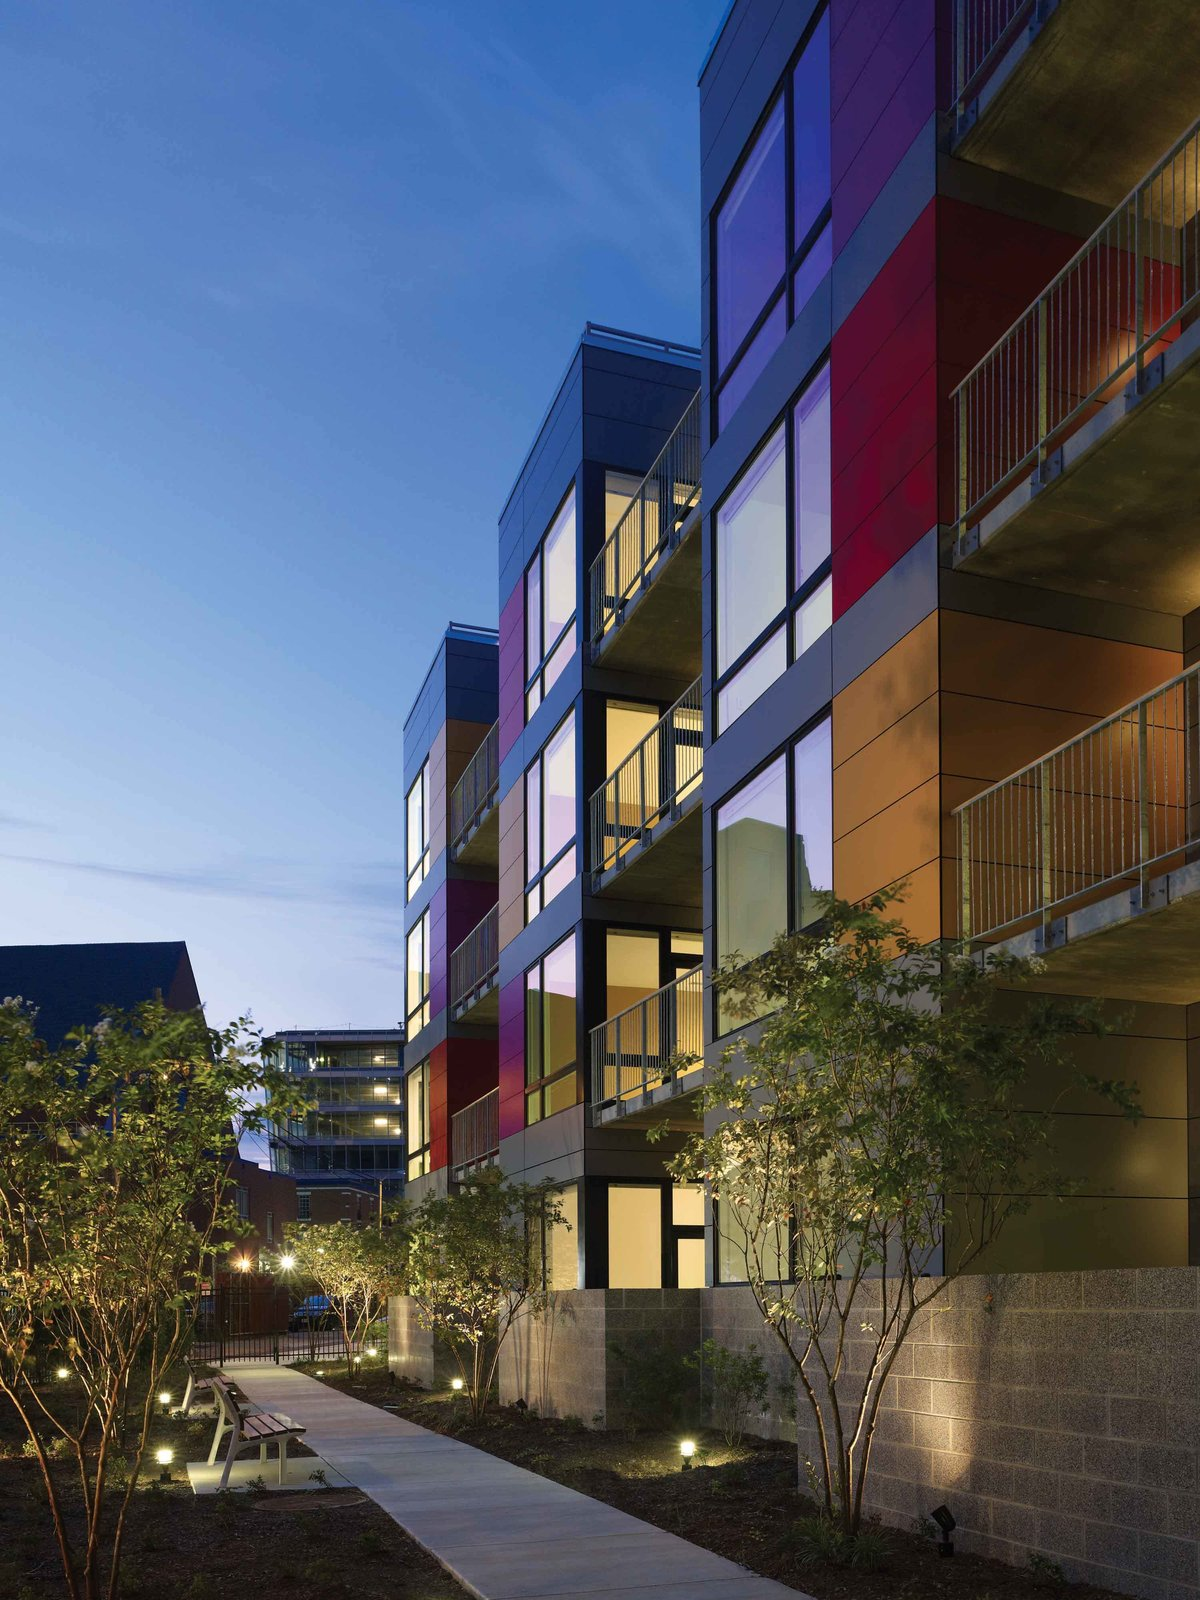 West facade garden pathway at dusk  In Living Color by Suzane Reatig Architecture